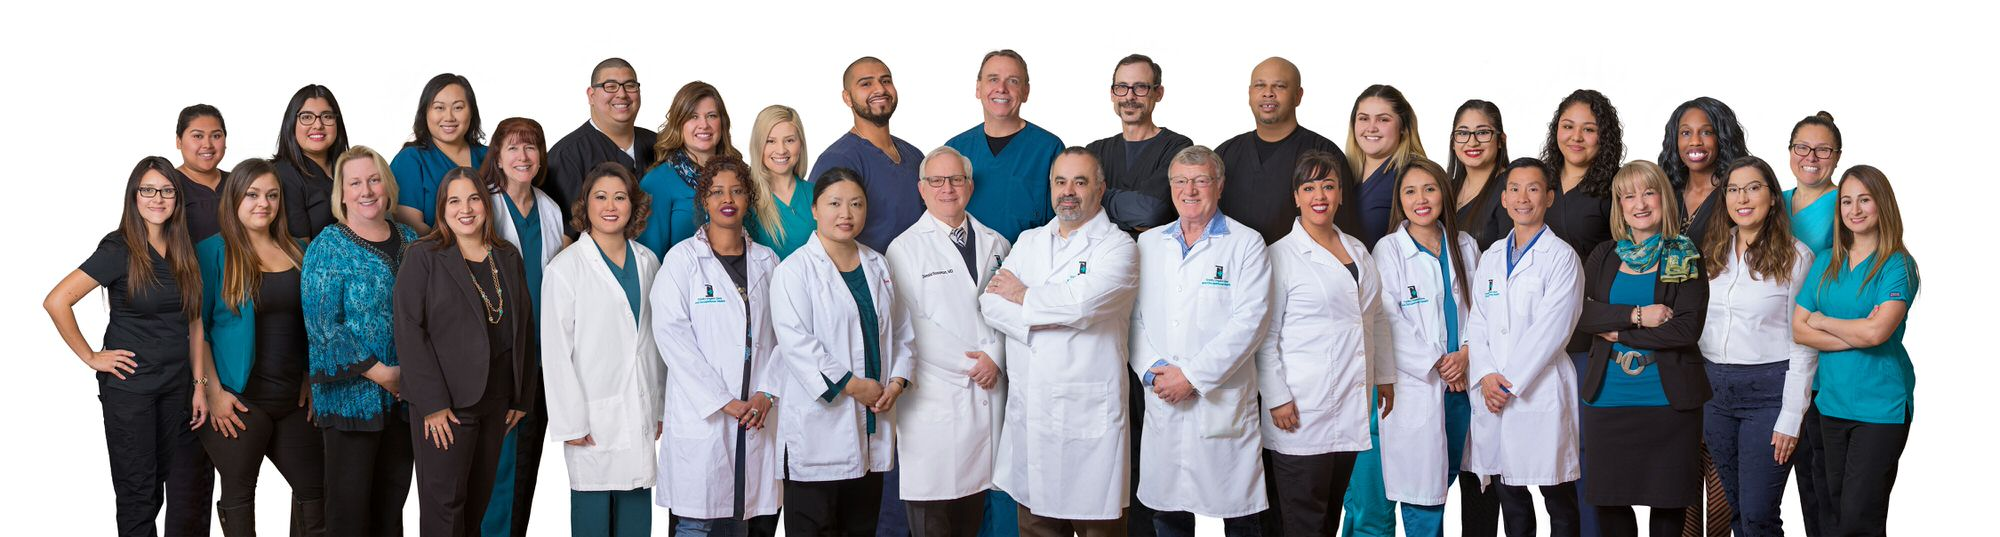 Stockton Urgent Care Providers